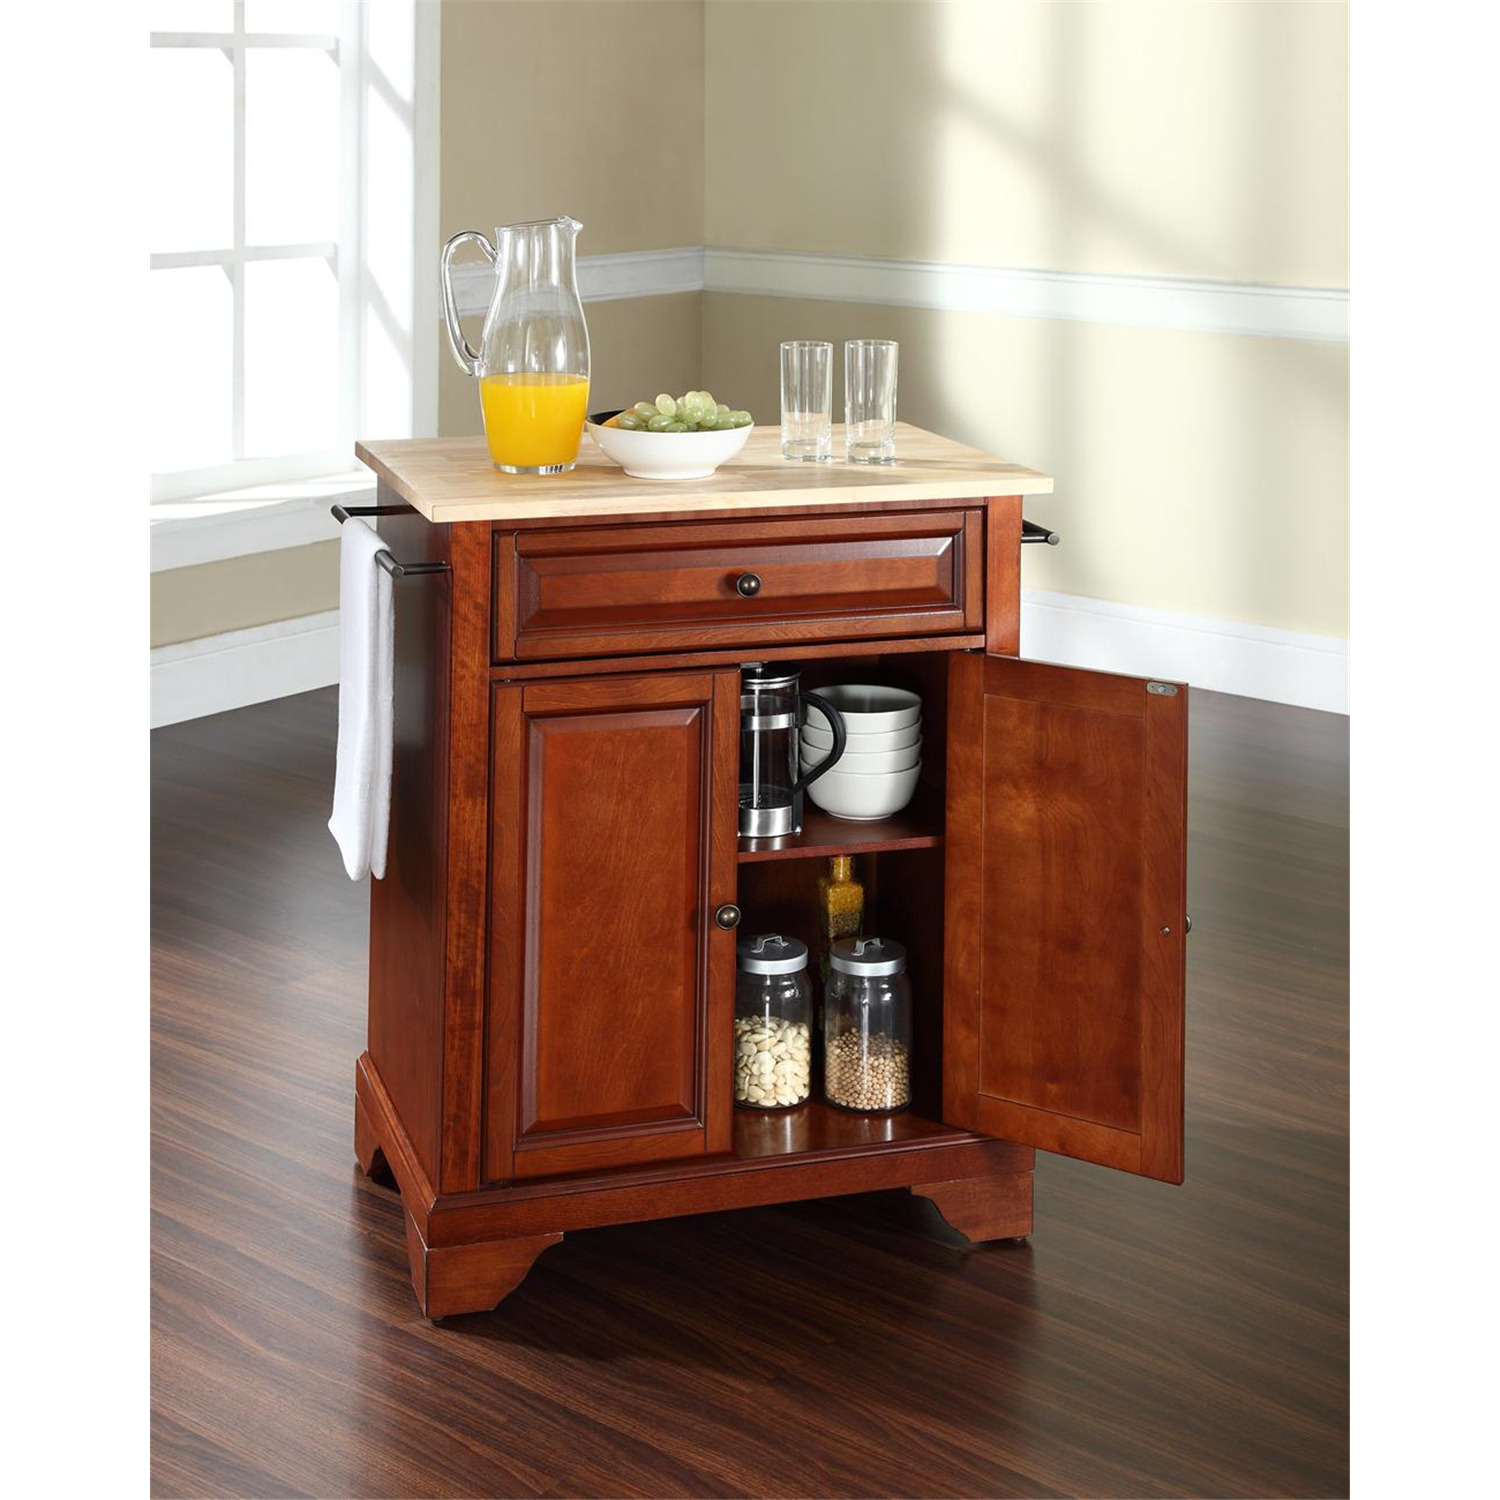 LaFayette Portable Kitchen Island  From 26500 to 398